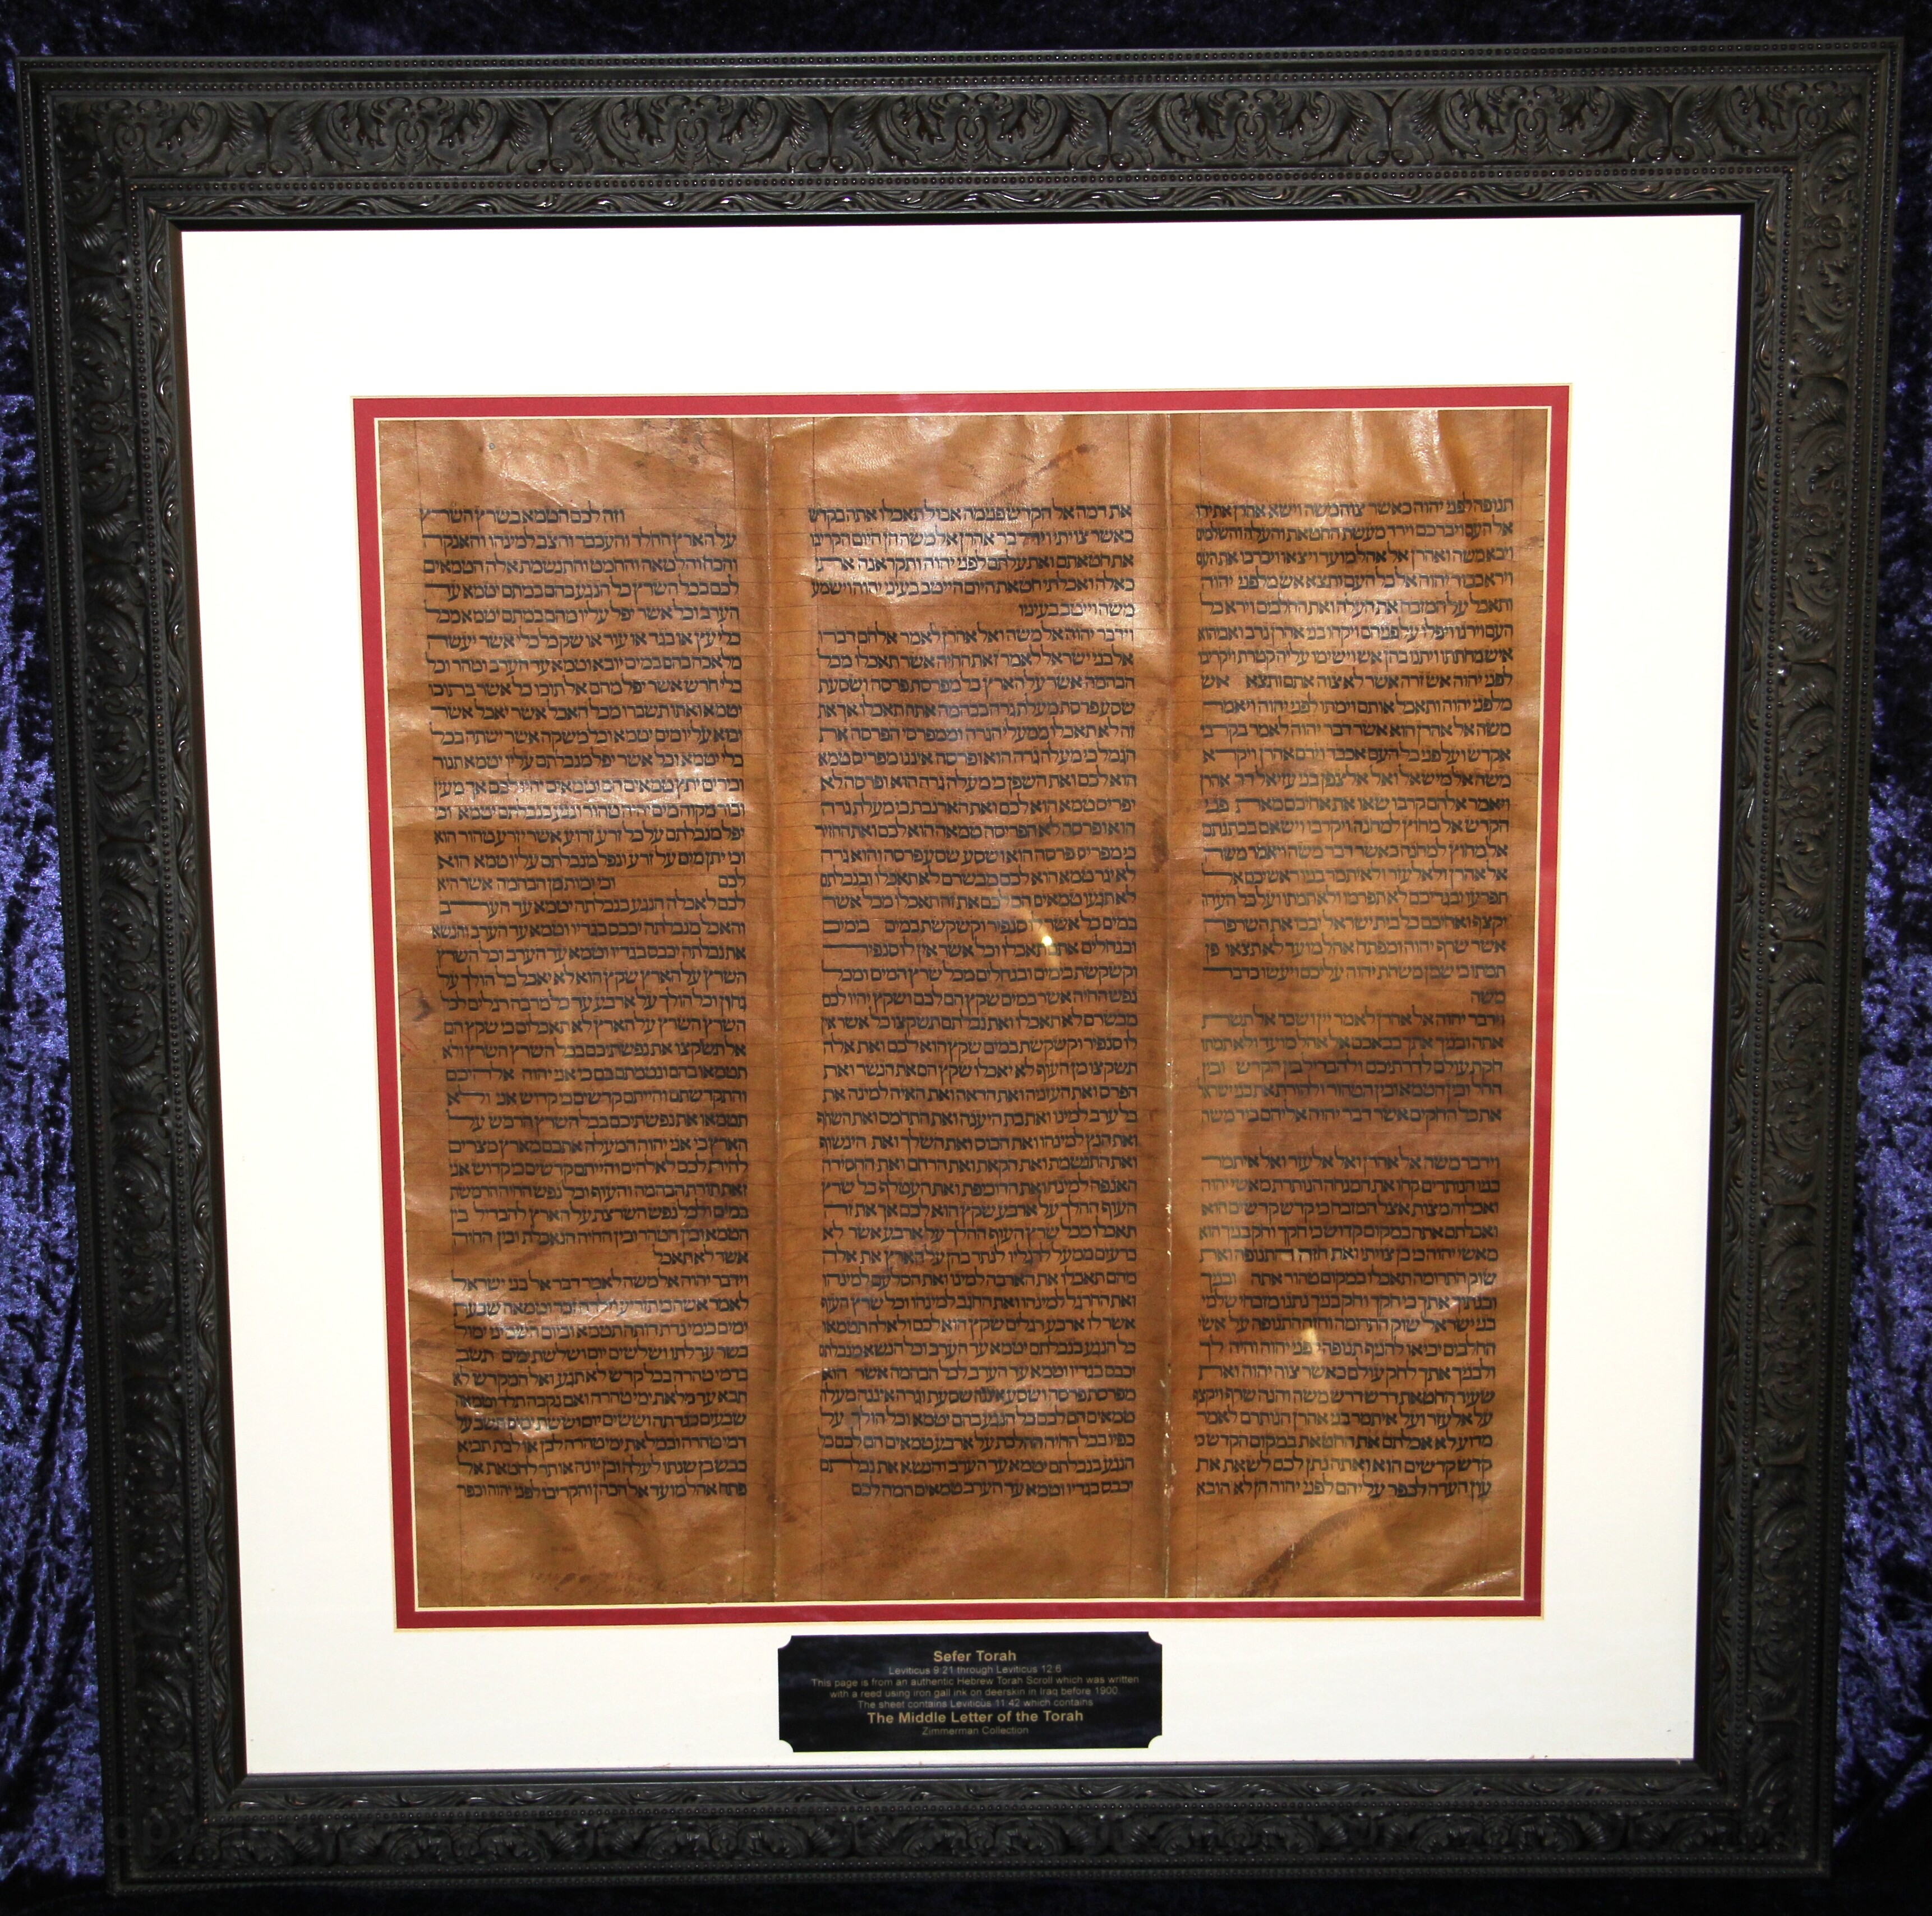 Torah sheet which contains the middle letter of the Torah.